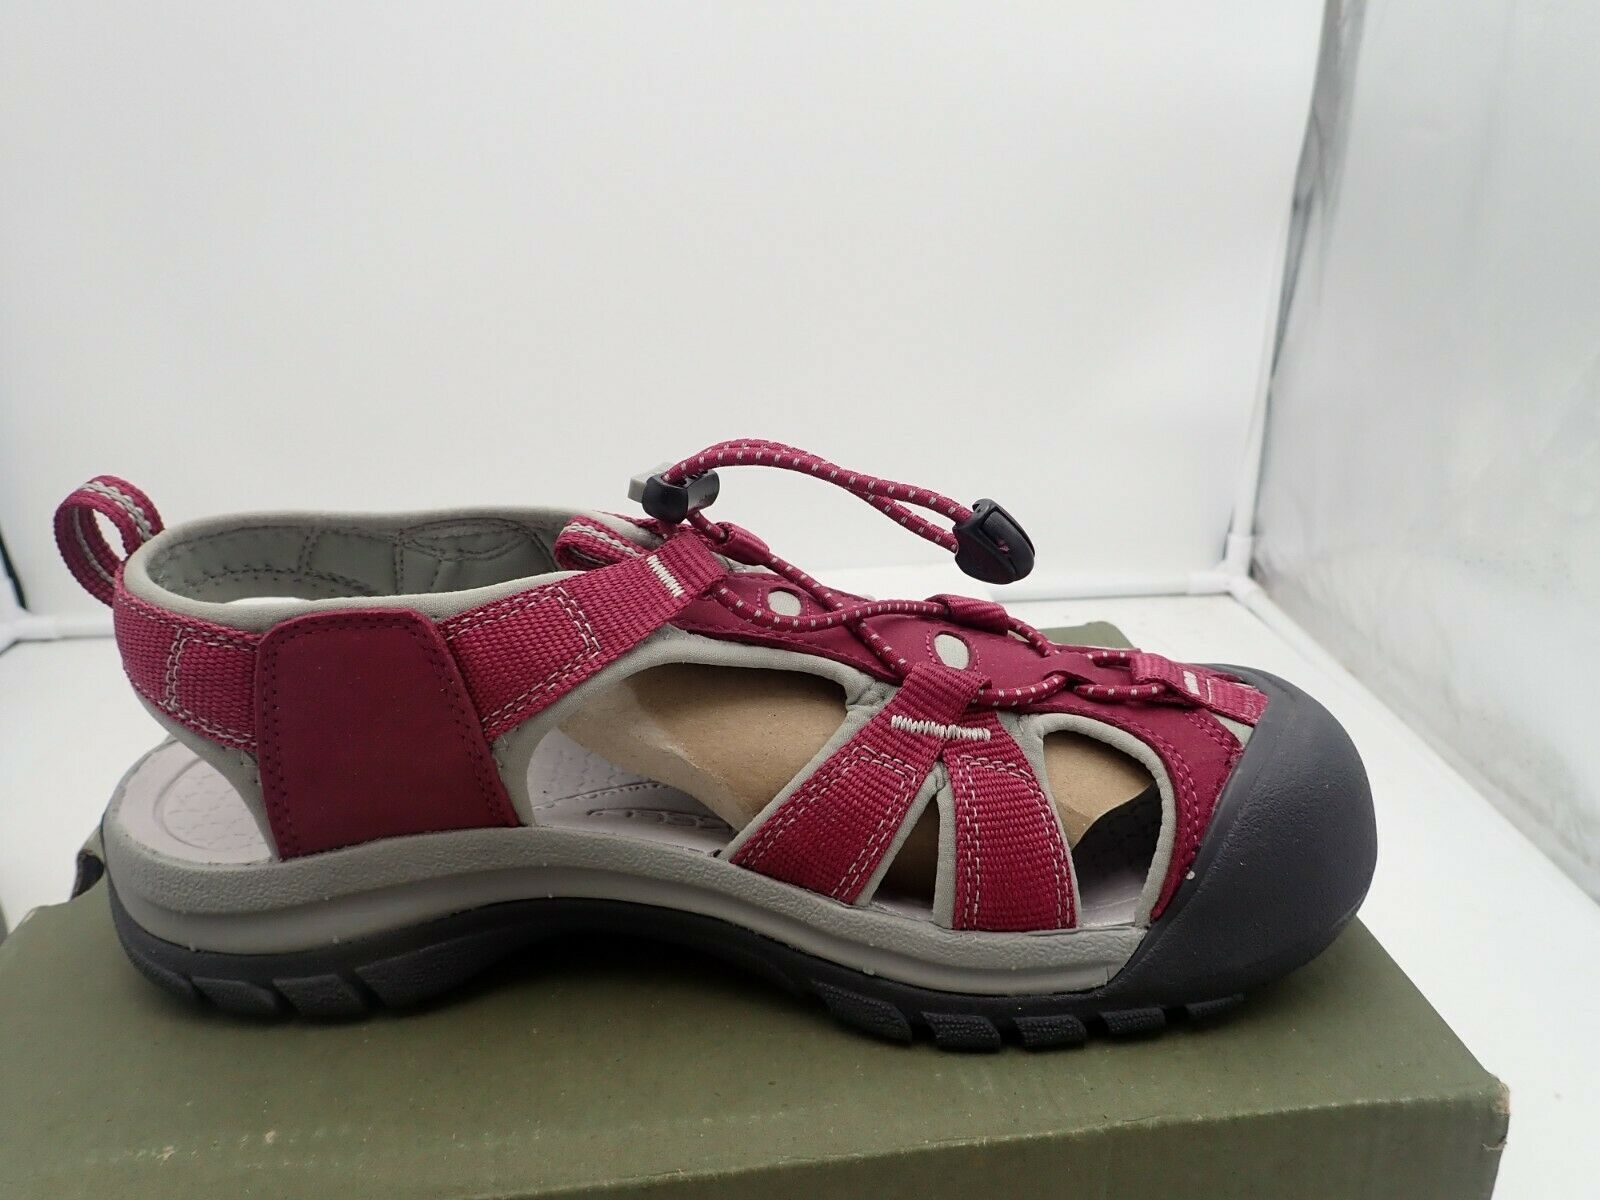 One Single Left Sandal size 10 M KEEN Women's Venice H2 Sandal Beet Red No right